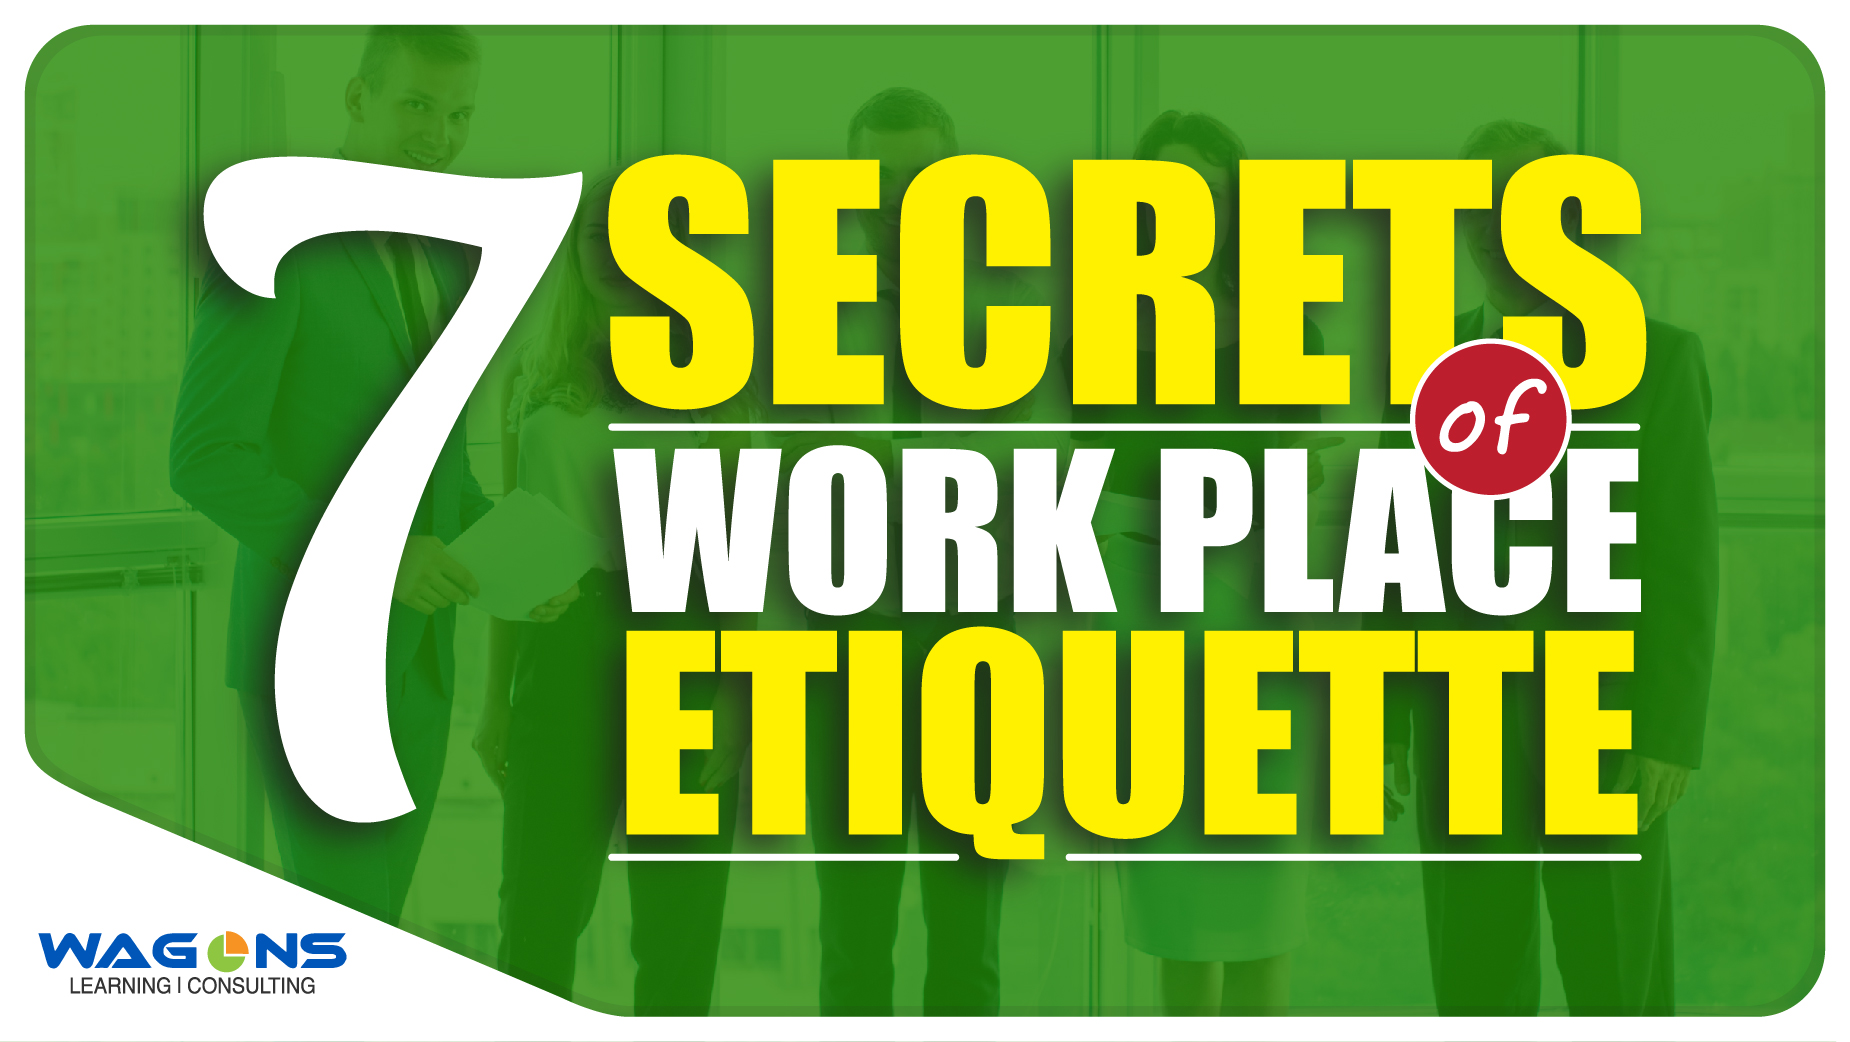 The 7 secrets of work place etiquette-01